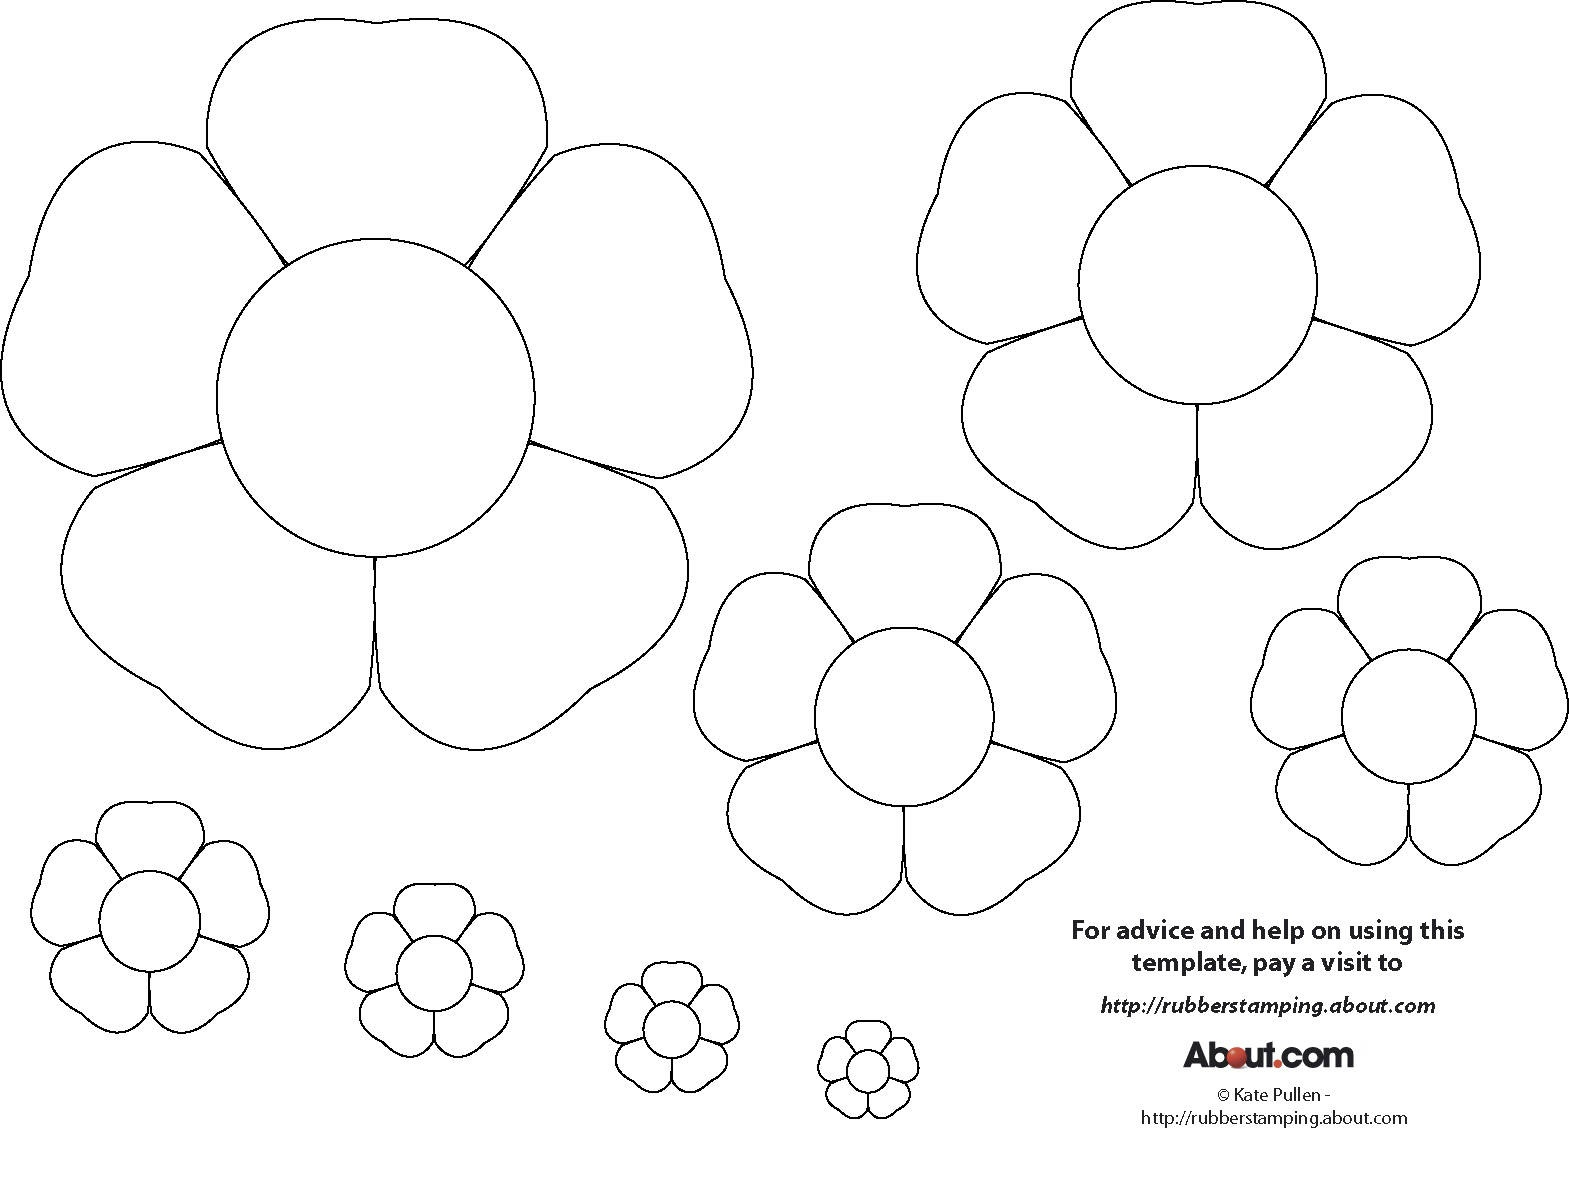 15 Printable Flower Patterns Designs Images - Paper Flower Templates - Free Printable Flower Applique Patterns